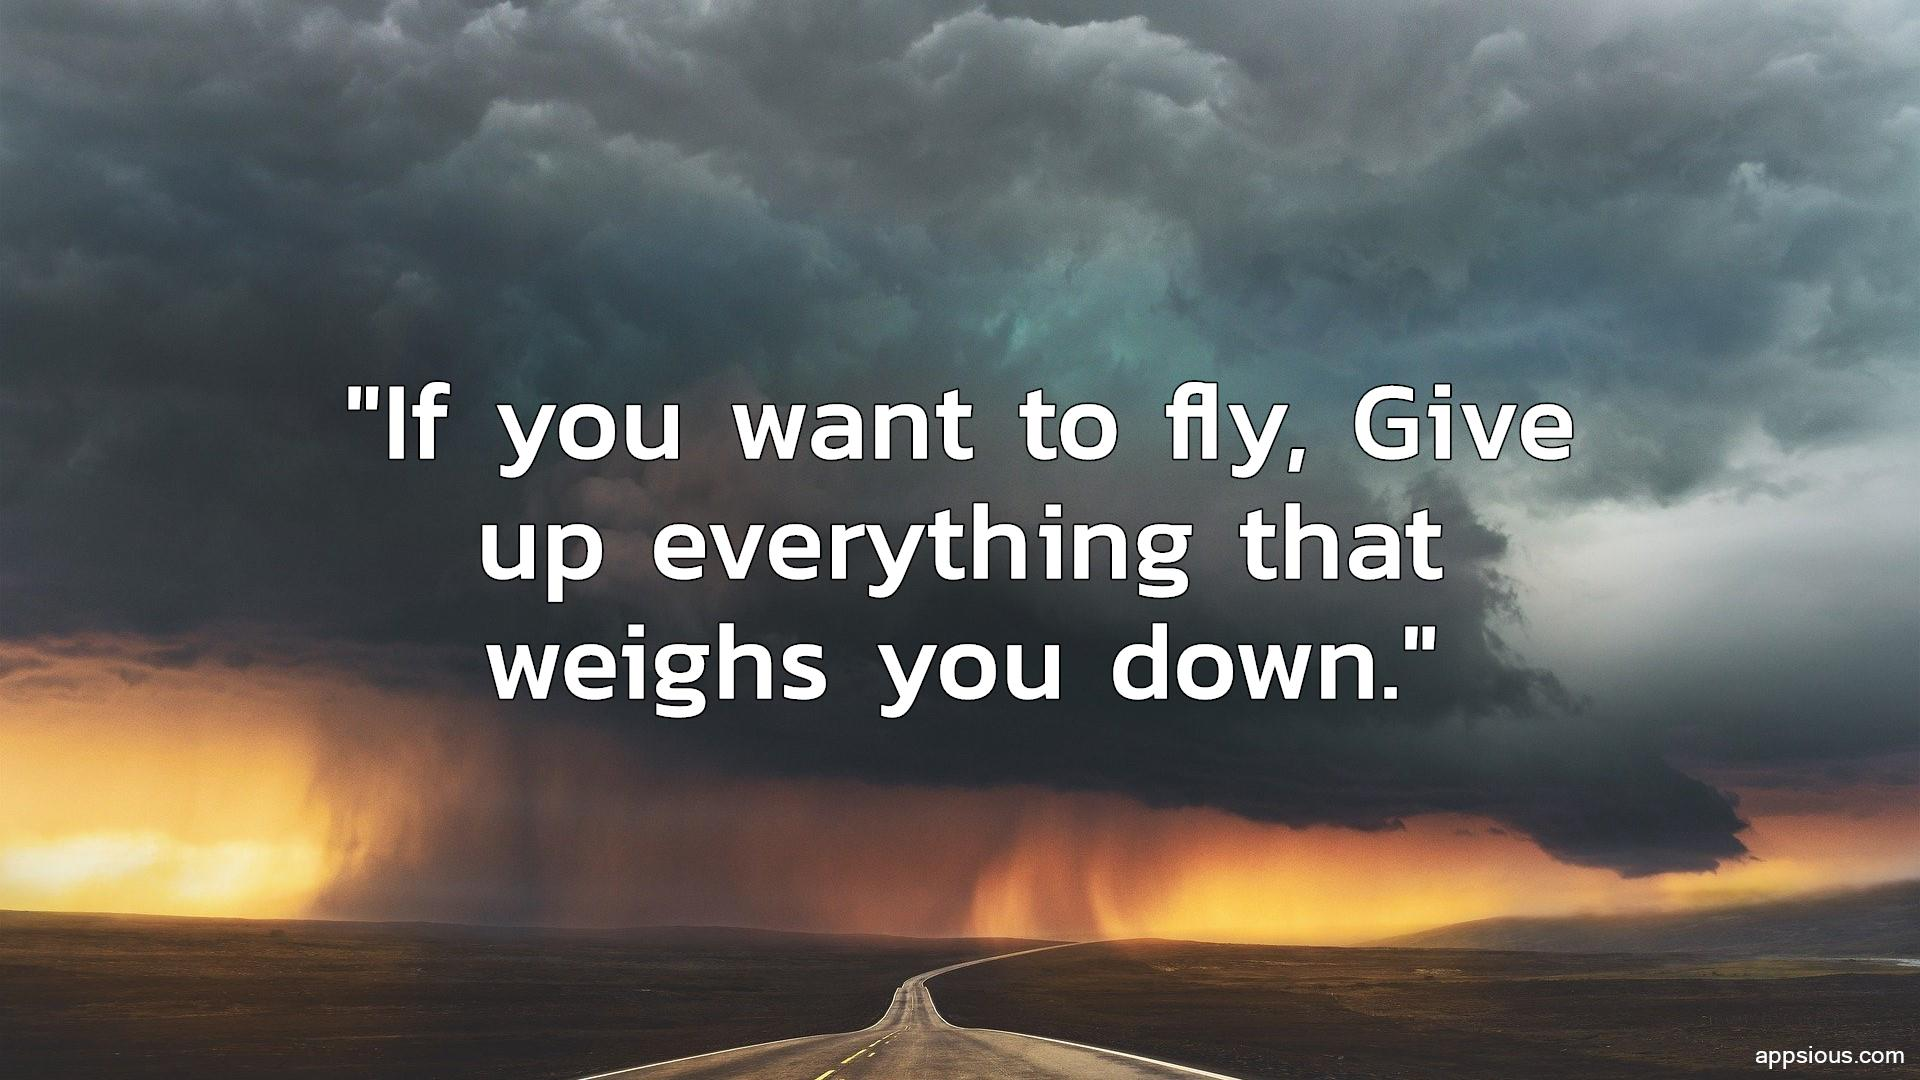 If you want to fly, Give up everything that weighs you down.